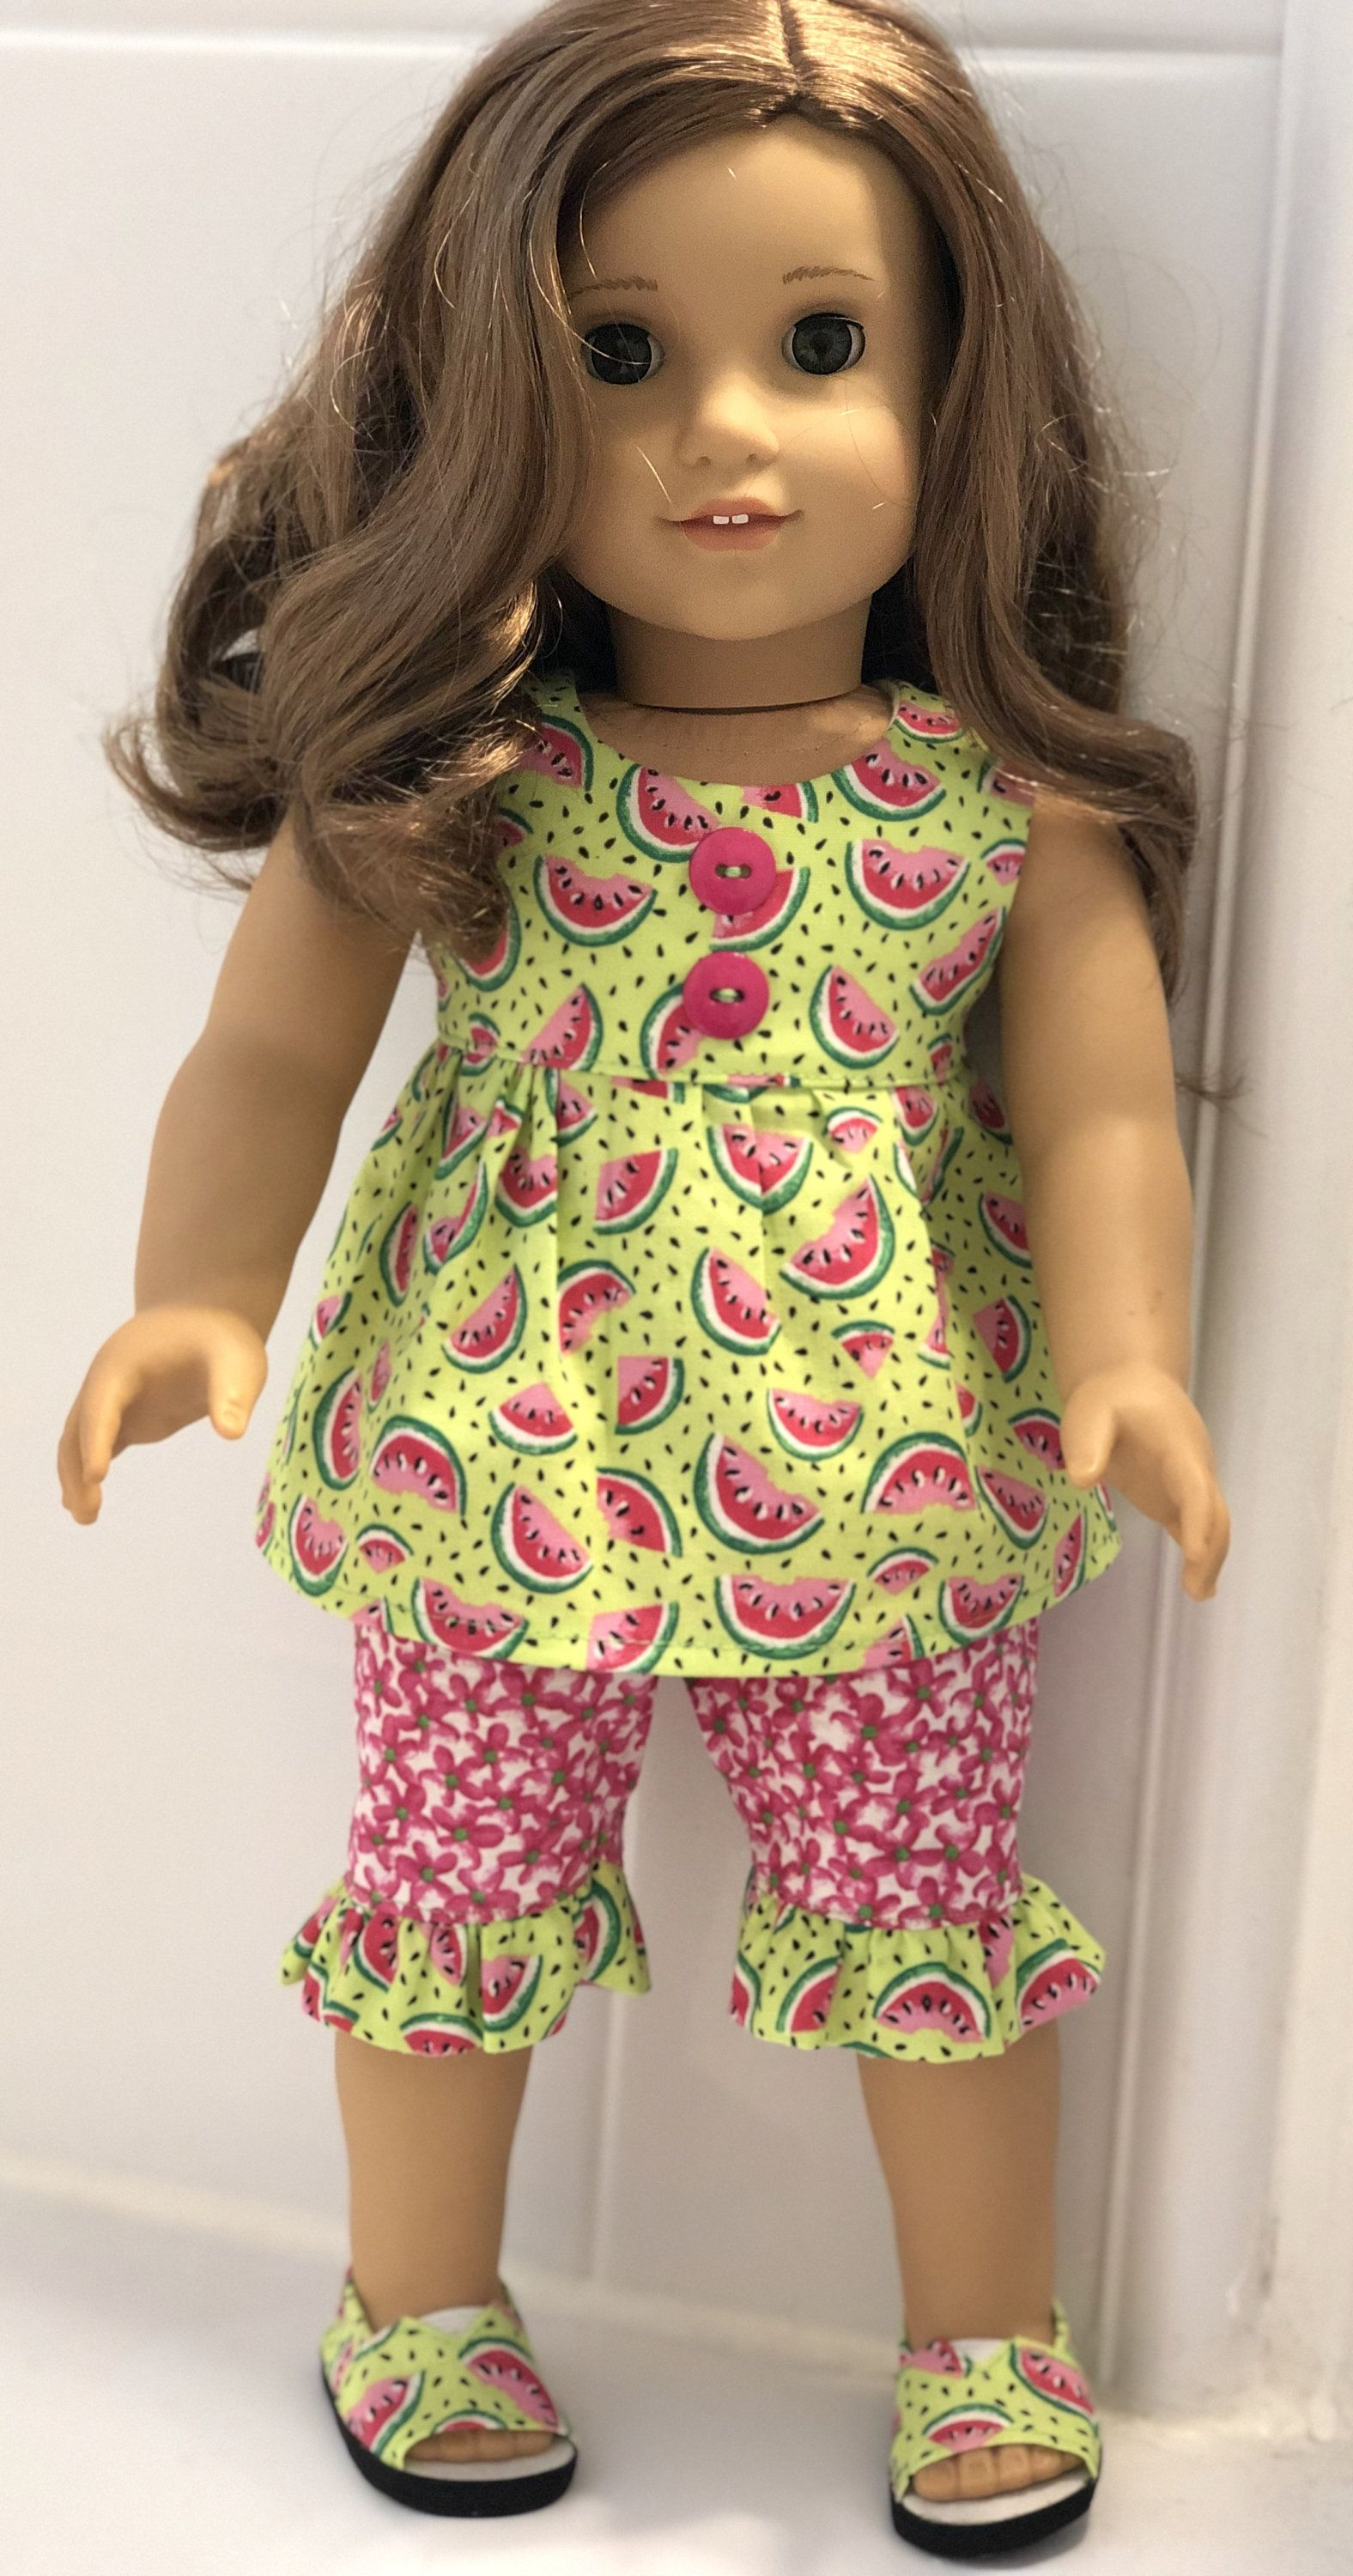 18 Girl Doll Summer Outfit, Watermelon Top, Ruffled Floral Capris, and Matching Shoes For Girl Dolls Such as American Girl #girldollclothes